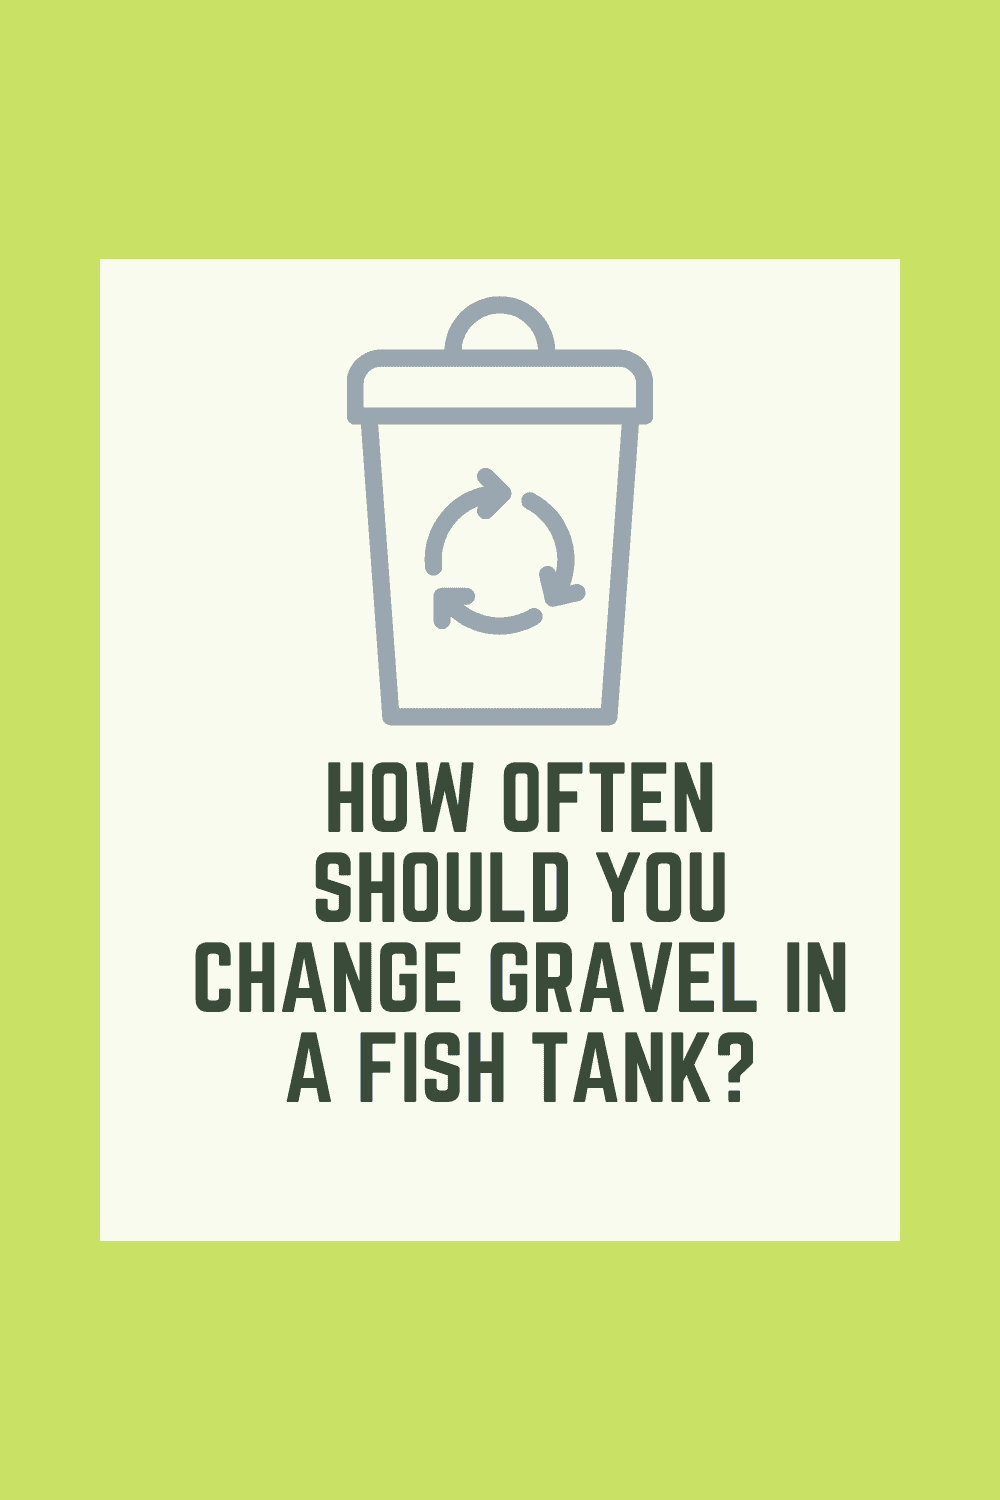 How often should you change gravel in a fish tank?